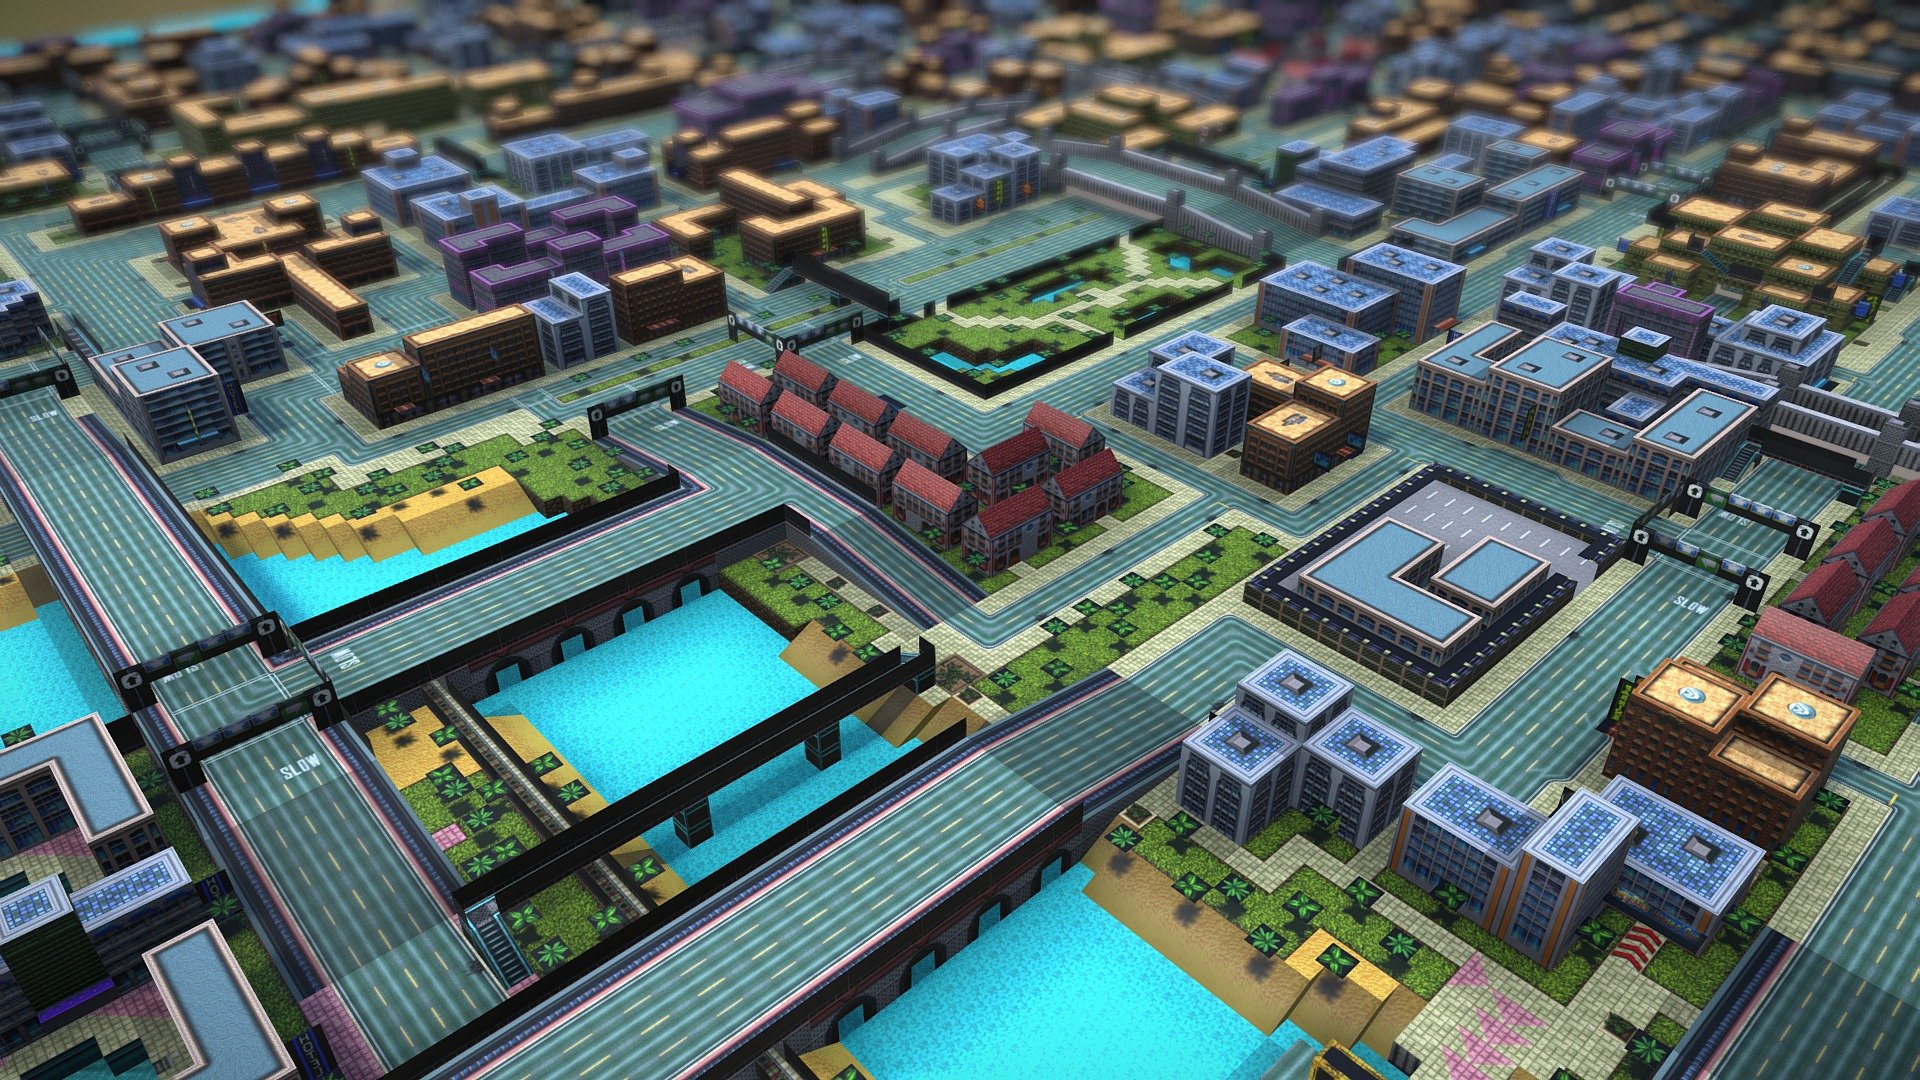 GTA 1 - Vice City - 3D Map - Download Free 3D model by ... Gta Vice City Map on starcraft 1 map, devil may cry 1 map, kingdom hearts 1 map, test drive unlimited 1 map, euro truck simulator 1 map, halo 1 map, mass effect 1 map, grand theft auto 1 map, the sims 1 map, manhunt 1 map, just cause 1 map, doom 1 map, need for speed underground 1 map, bioshock 1 map, prototype 1 map, crash bandicoot 1 map, tomb raider 1 map,